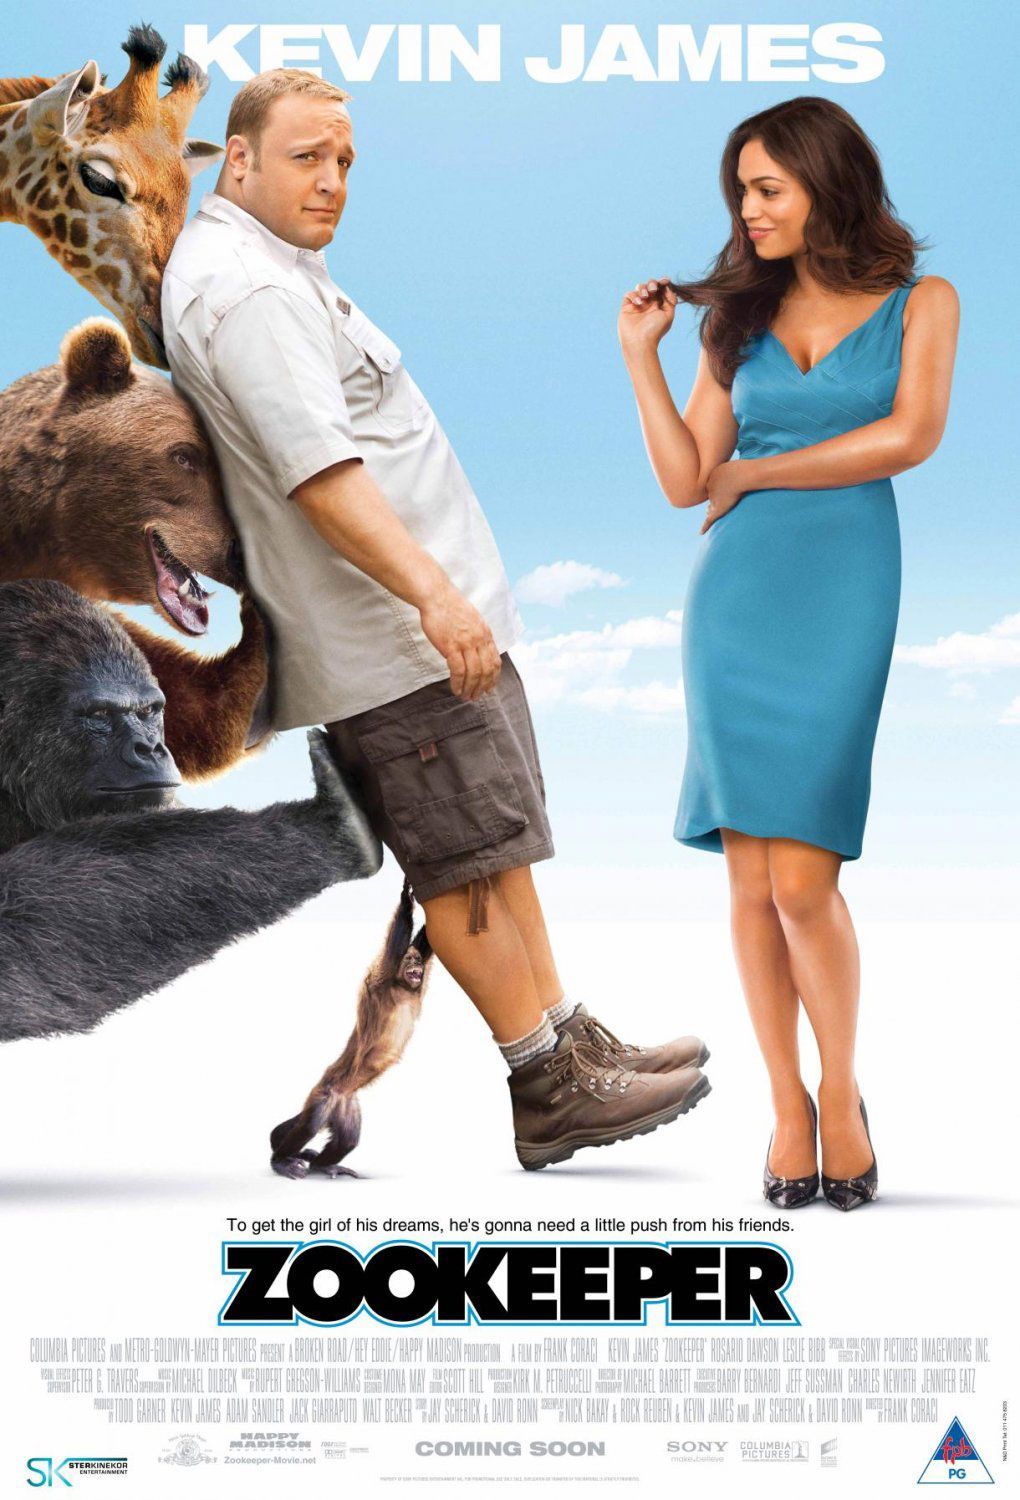 Zookeeper , starring Kevin James, Rosario Dawson, Leslie Bibb, Ken Jeong. A group of zoo animals decide to break their code of silence in order to help their lovable zoo keeper find love -- without opting to leave his current job for something more illustrious. #Comedy #Family #Romance